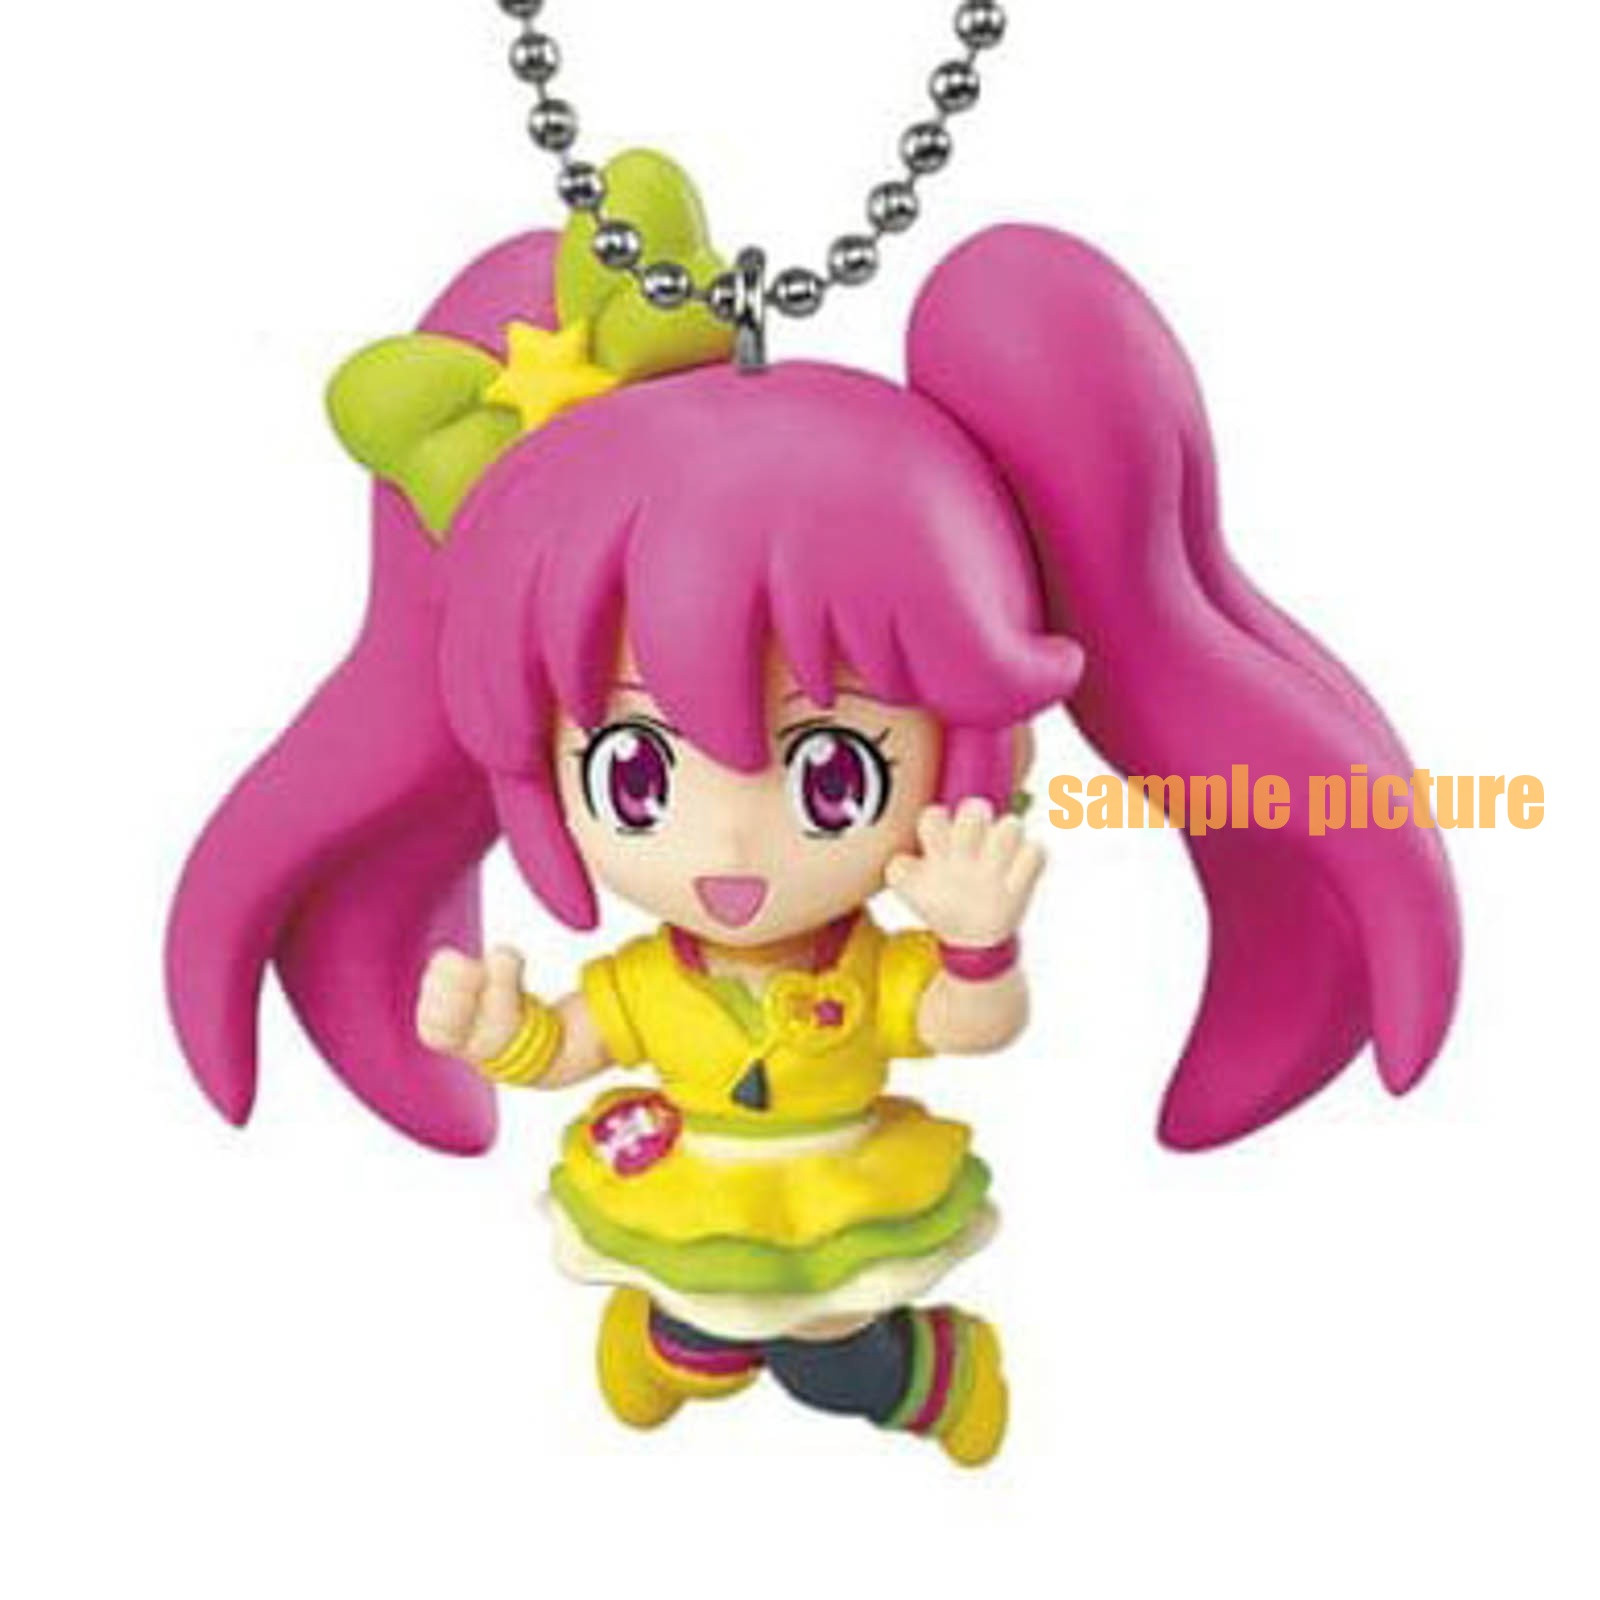 HappinessCharge PreCure! Cure Lovely (Lollipop hip hop ver. ) Mascot Figure Ball Keychain 2 JAPAN ANIME